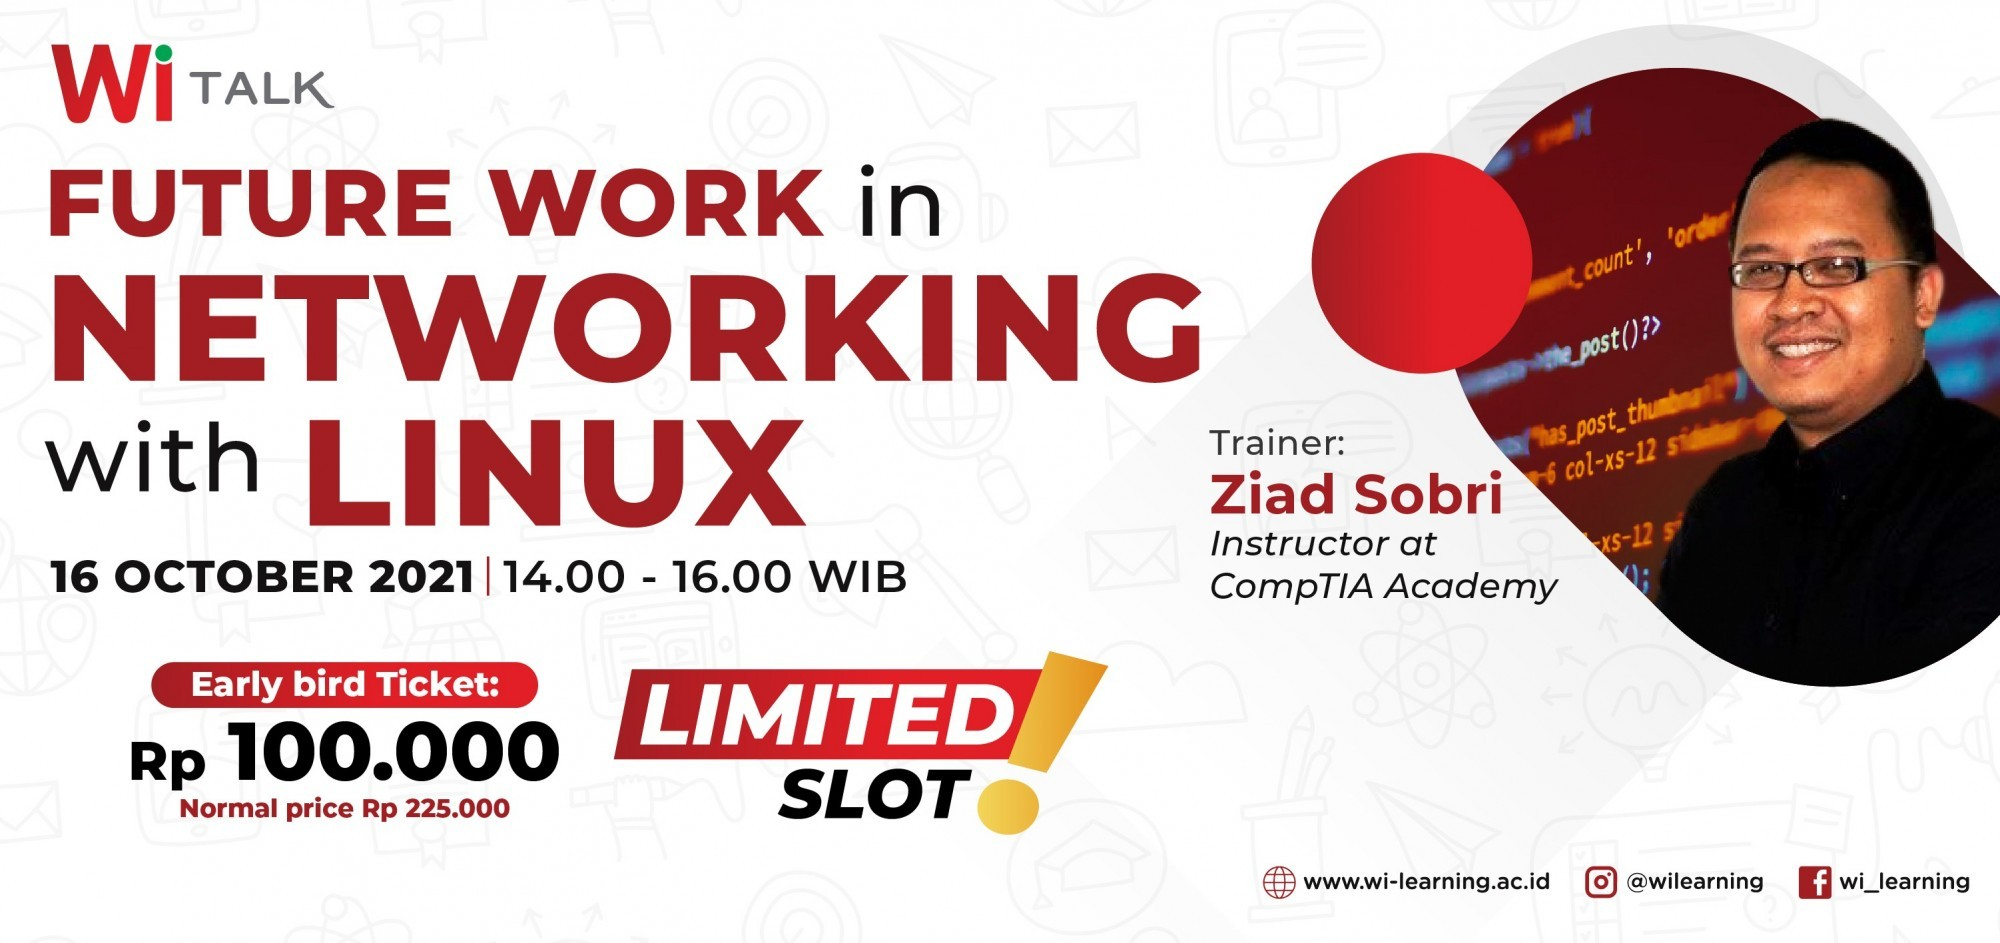 Wi Talk: Future Work in Networking with Linux